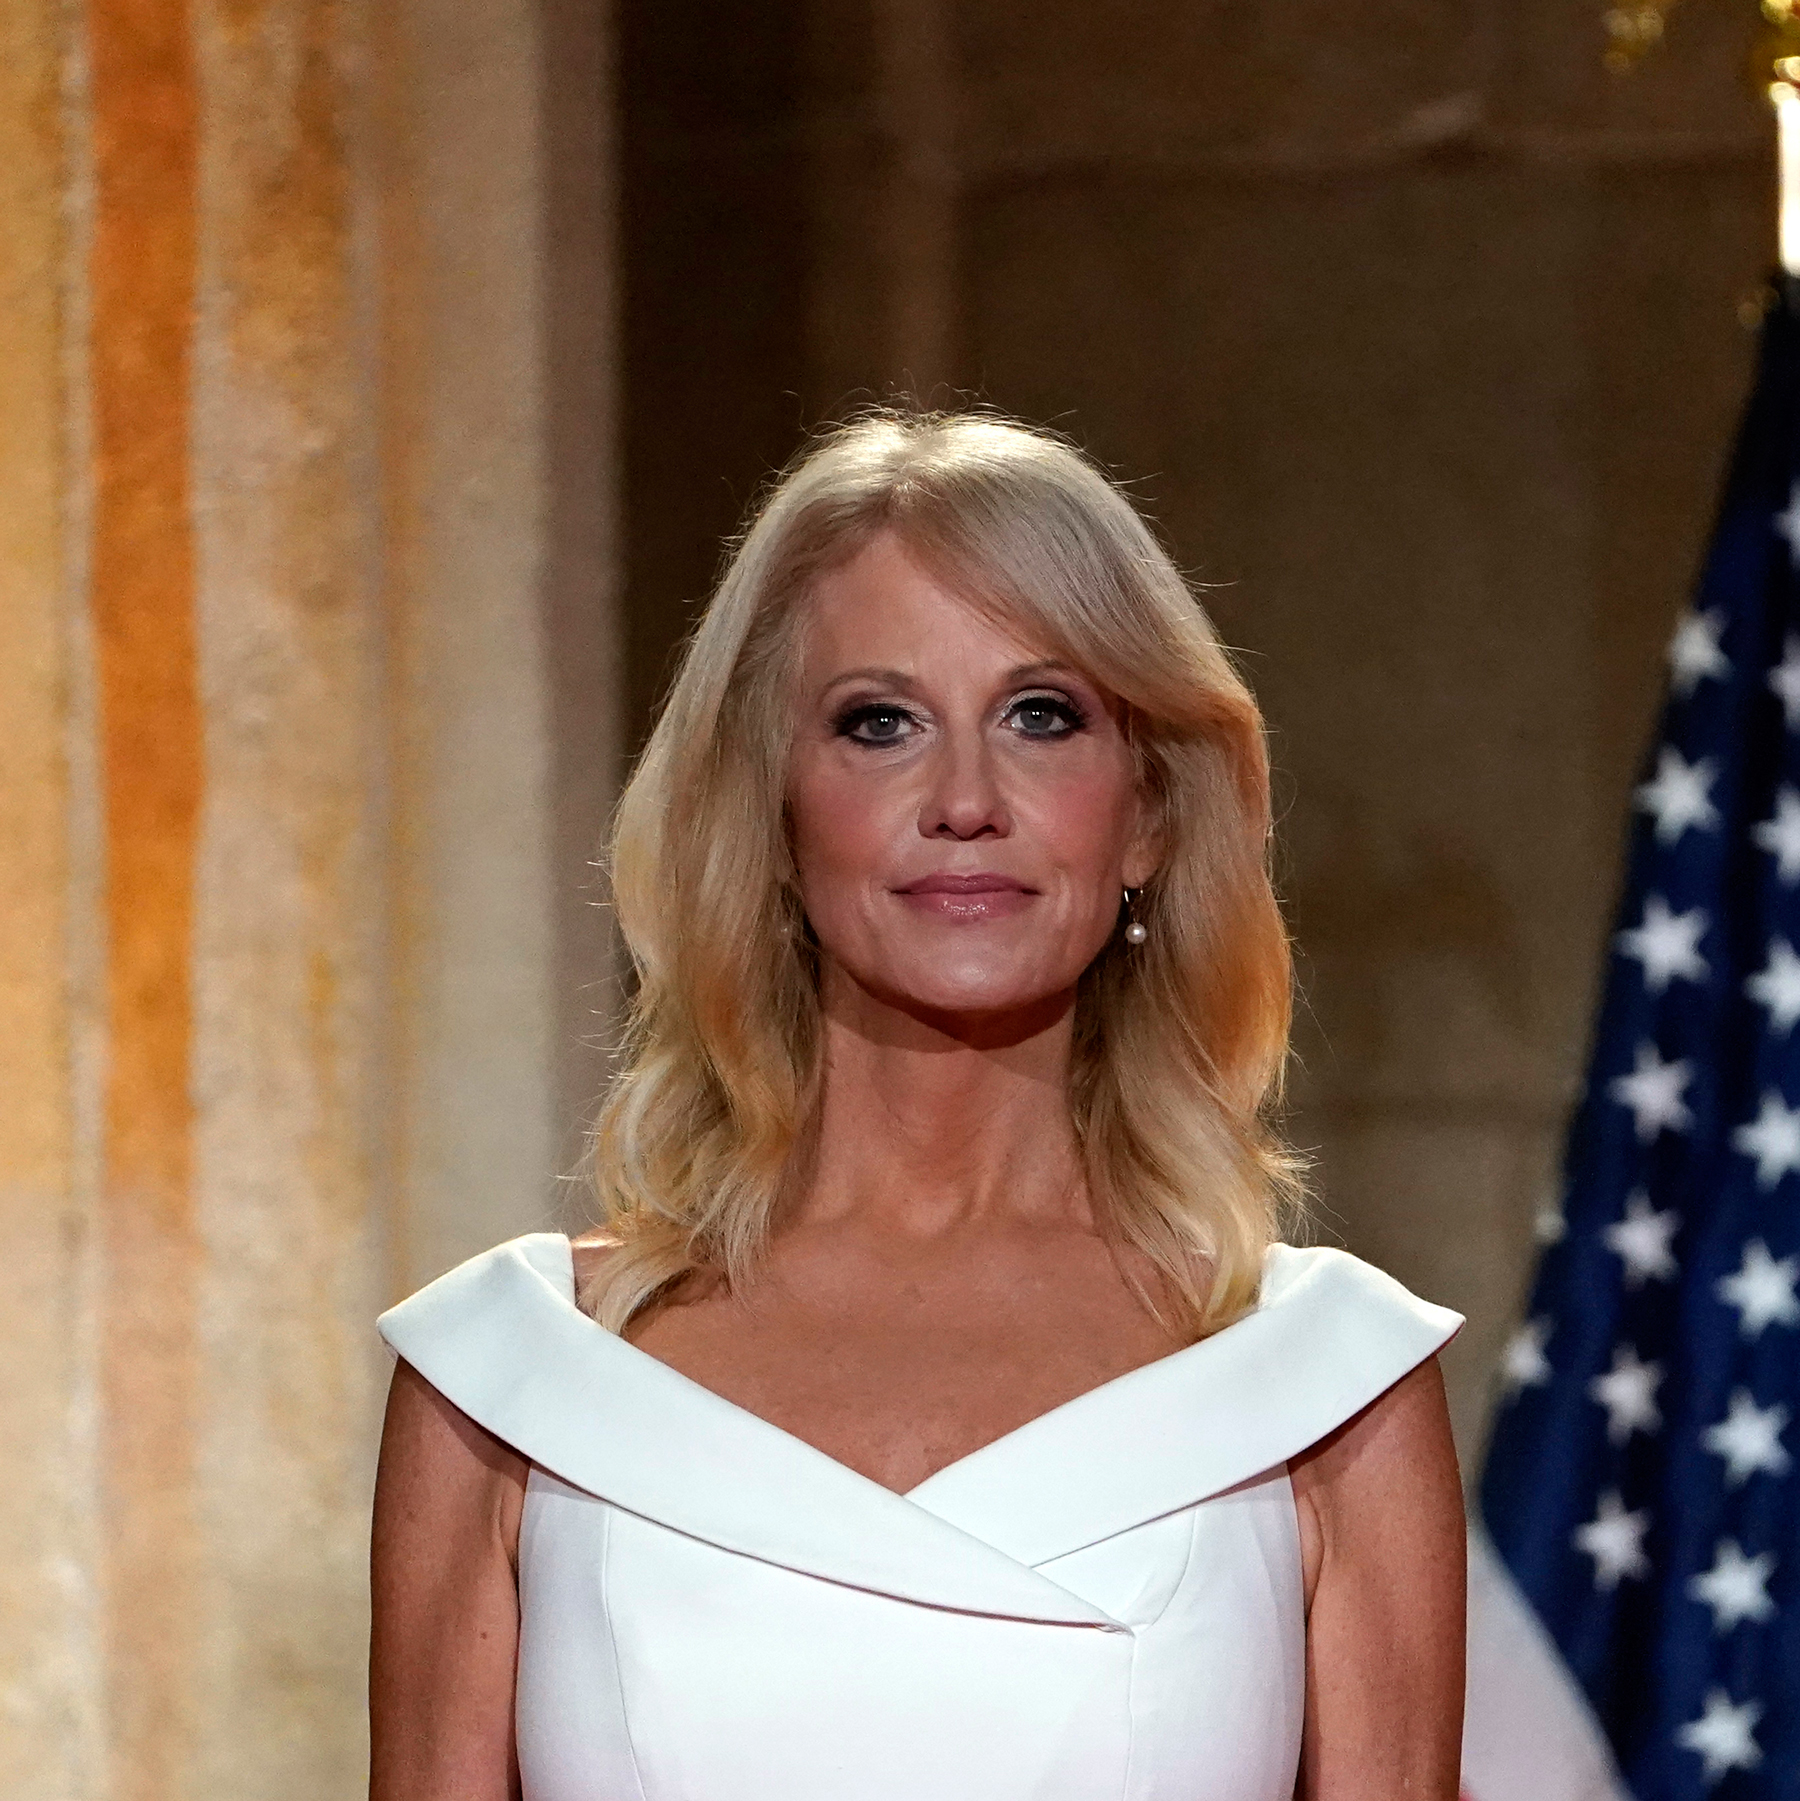 White House counselor Kellyanne Conway waits to tape her speech for the third day of the Republican National Convention from the Andrew W. Mellon Auditorium in Washington, Wednesday, Aug. 26, 2020. (AP Photo/Susan Walsh)